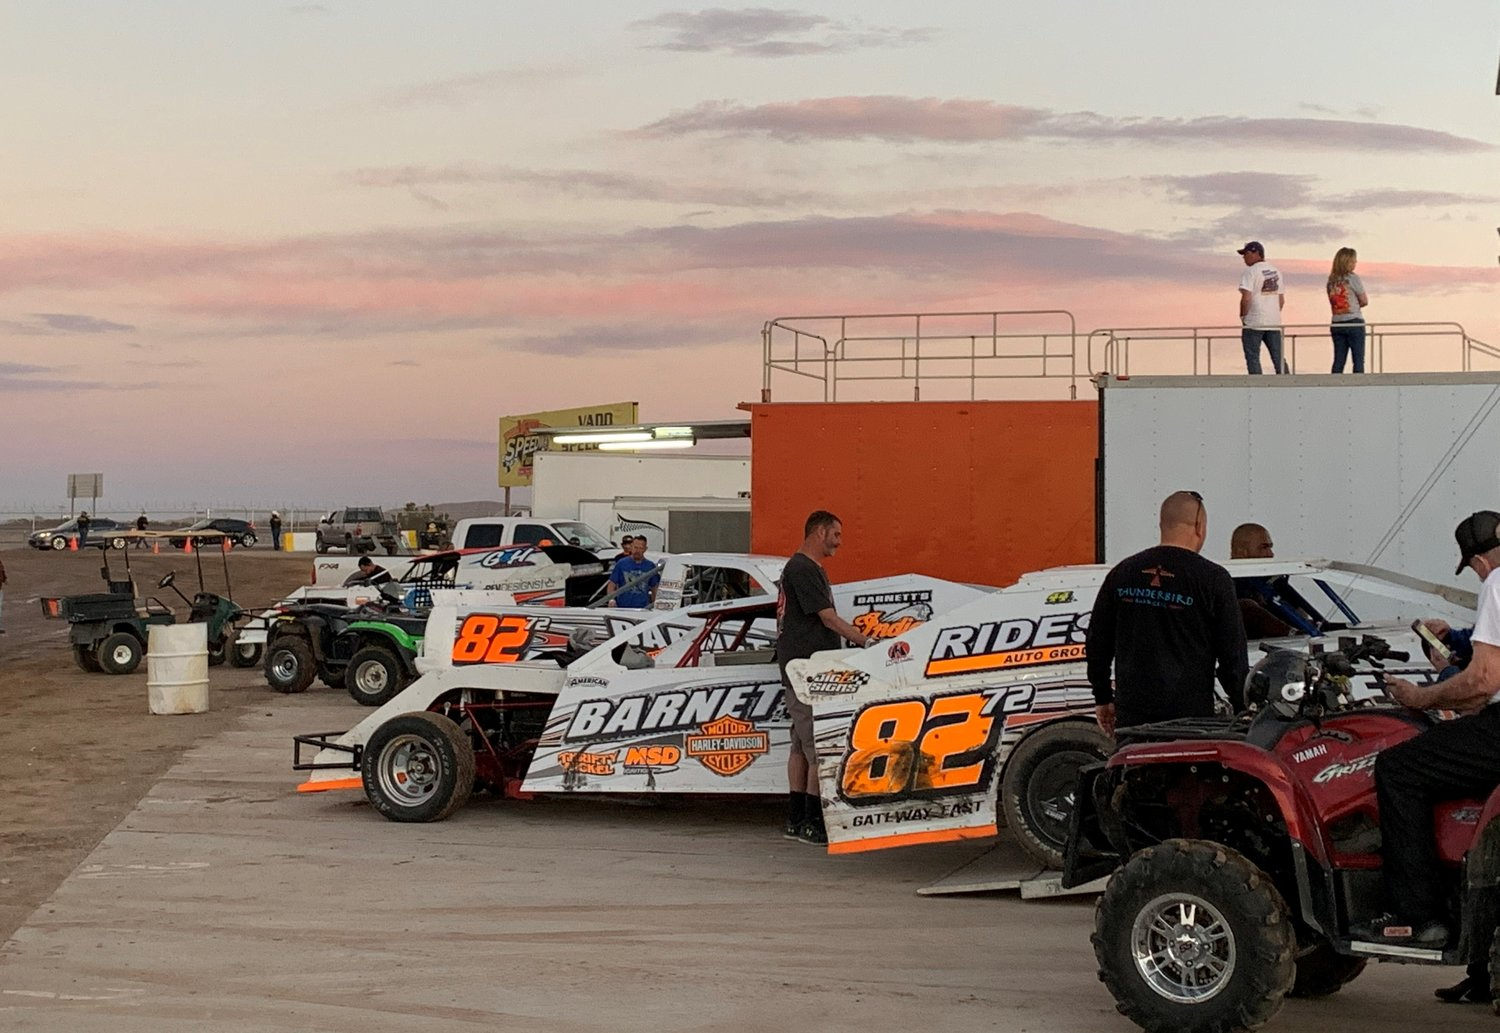 After 14 months of waiting, race car drivers and their teams were able to get their vehicles moving Saturday, March 20, as Vado Speedway Park opened its gates at 25 percent capacity. As long as Doña Ana County remains at the yellow level or better, there will be racing every weekend through the end of November.